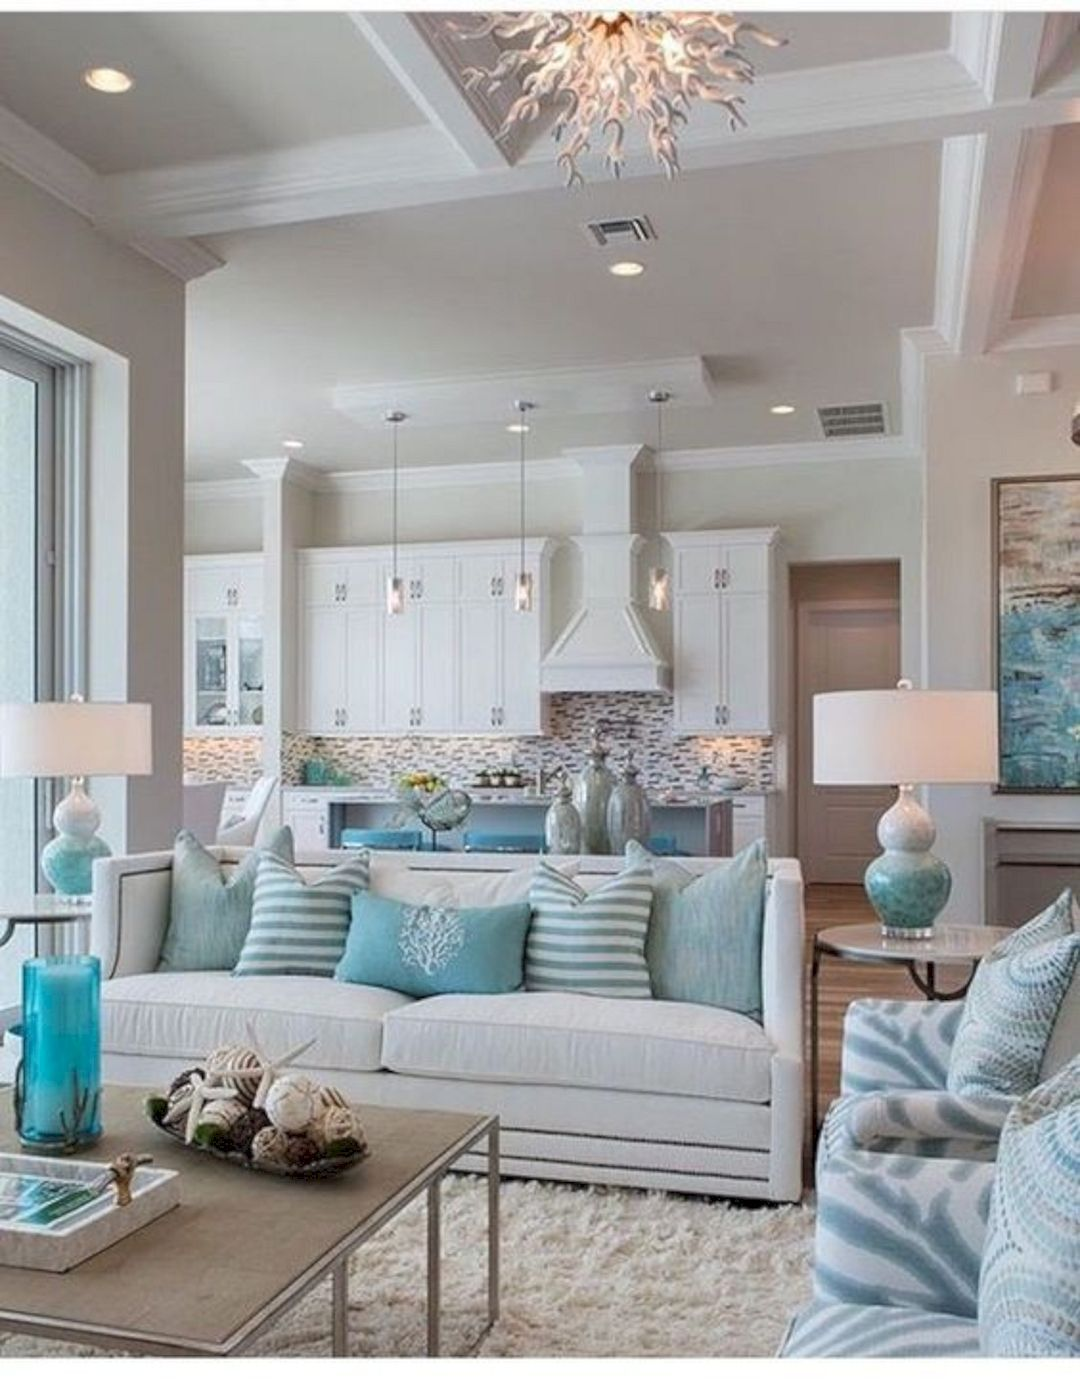 16 Refreshing Home Decoration Ideas To Bring Out Coastal Feels Https Www Futuristarchitecture 34027 Html